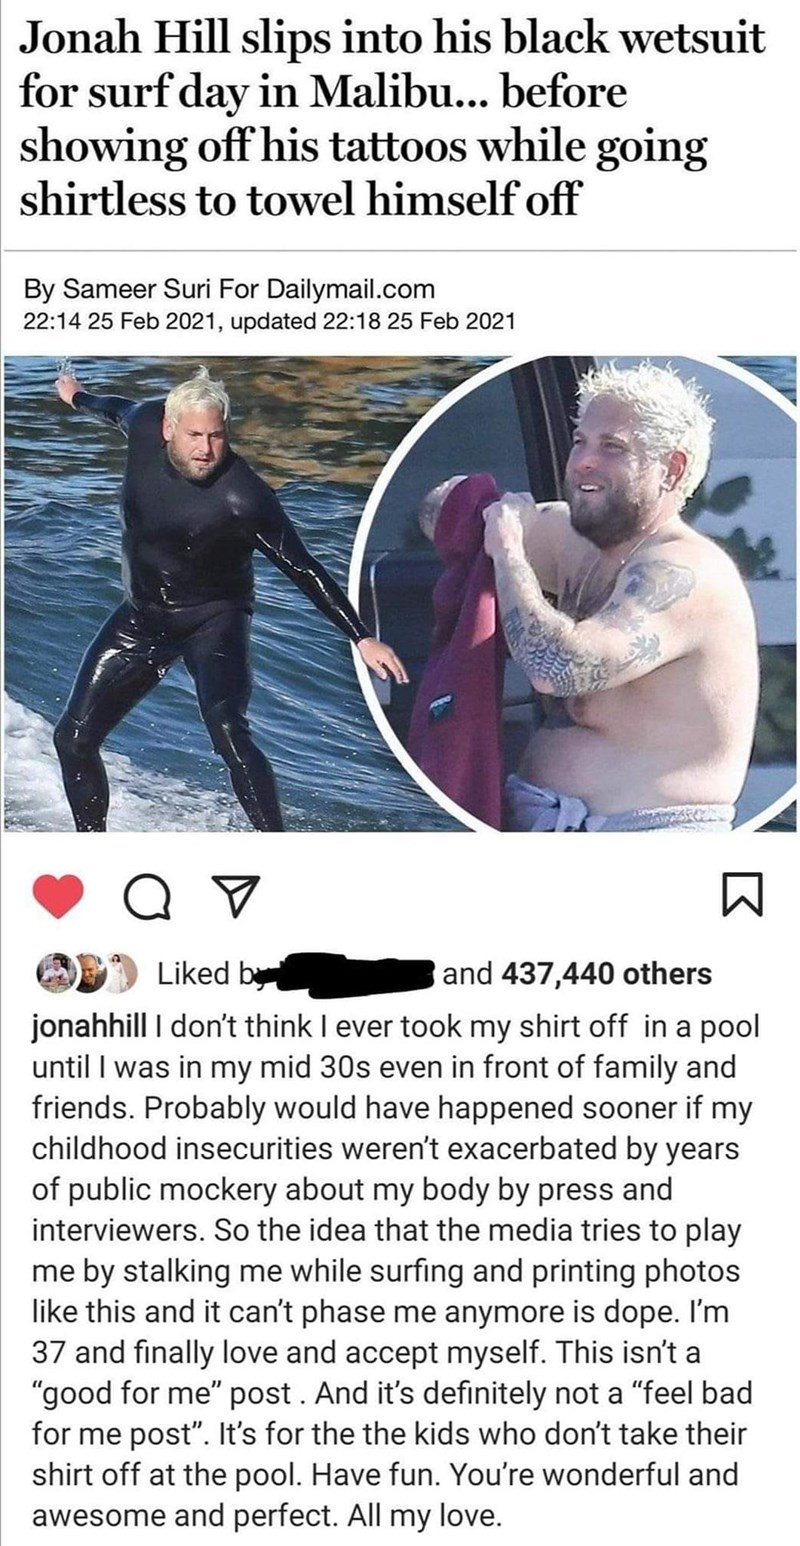 Water - Jonah Hill slips into his black wetsuit for surf day in Malibu... before showing off his tattoos while going shirtless to towel himself off By Sameer Suri For Dailymail.com 22:14 25 Feb 2021, updated 22:18 25 Feb 2021 Liked by and 437,440 others jonahhill I don't think I ever took my shirt off in a pool until I was in my mid 30s even in front of family and friends. Probably would have happened sooner if my childhood insecurities weren't exacerbated by years of public mockery about my bod